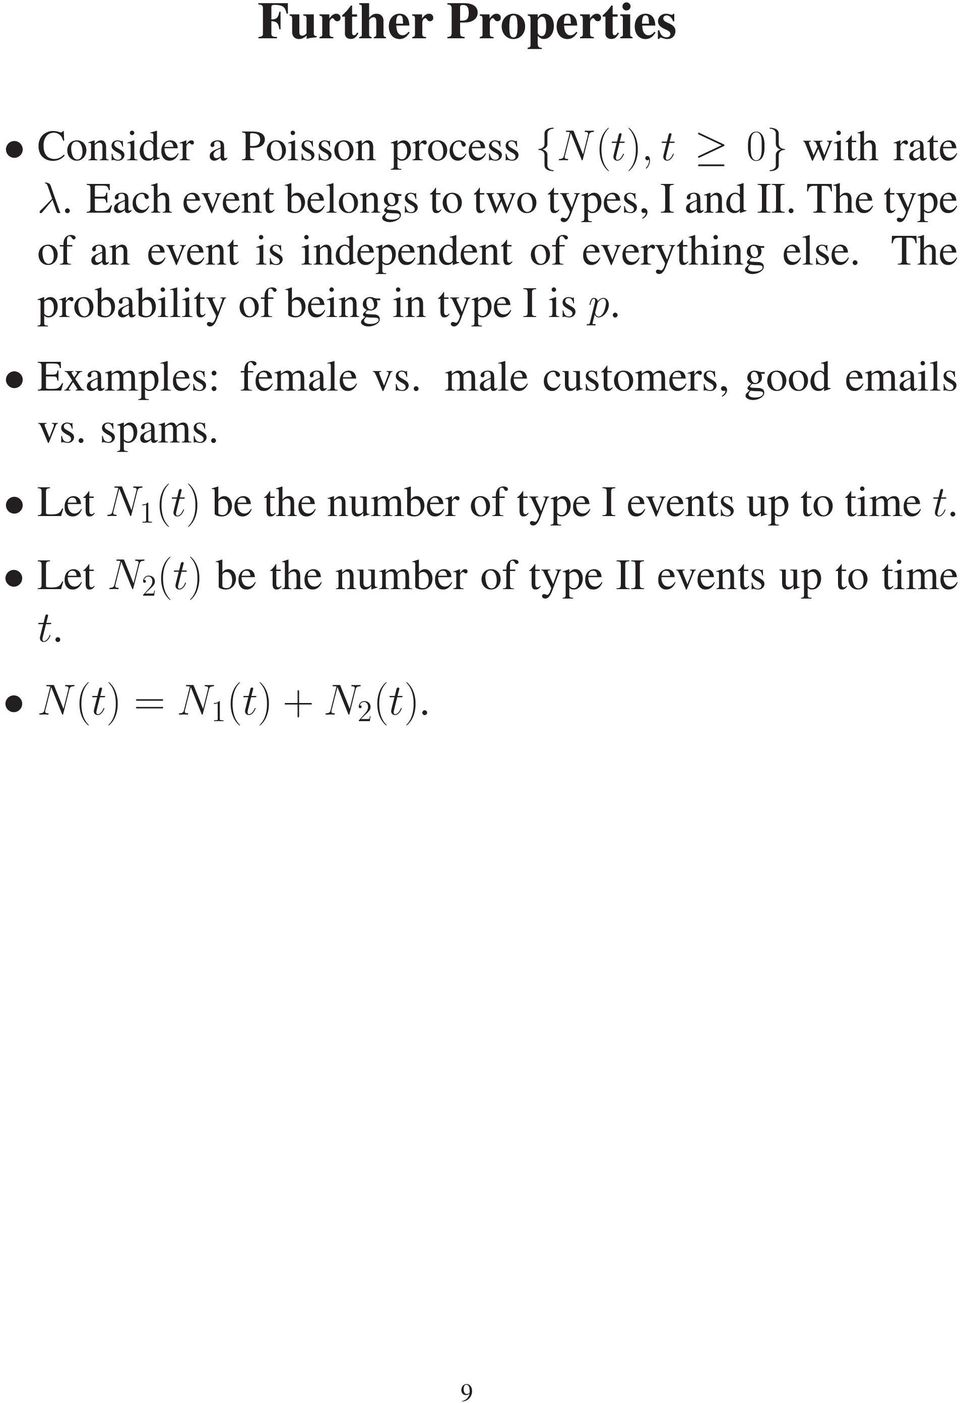 The probability of being in type I is p. Examples: female vs. male customers, good emails vs. spams.